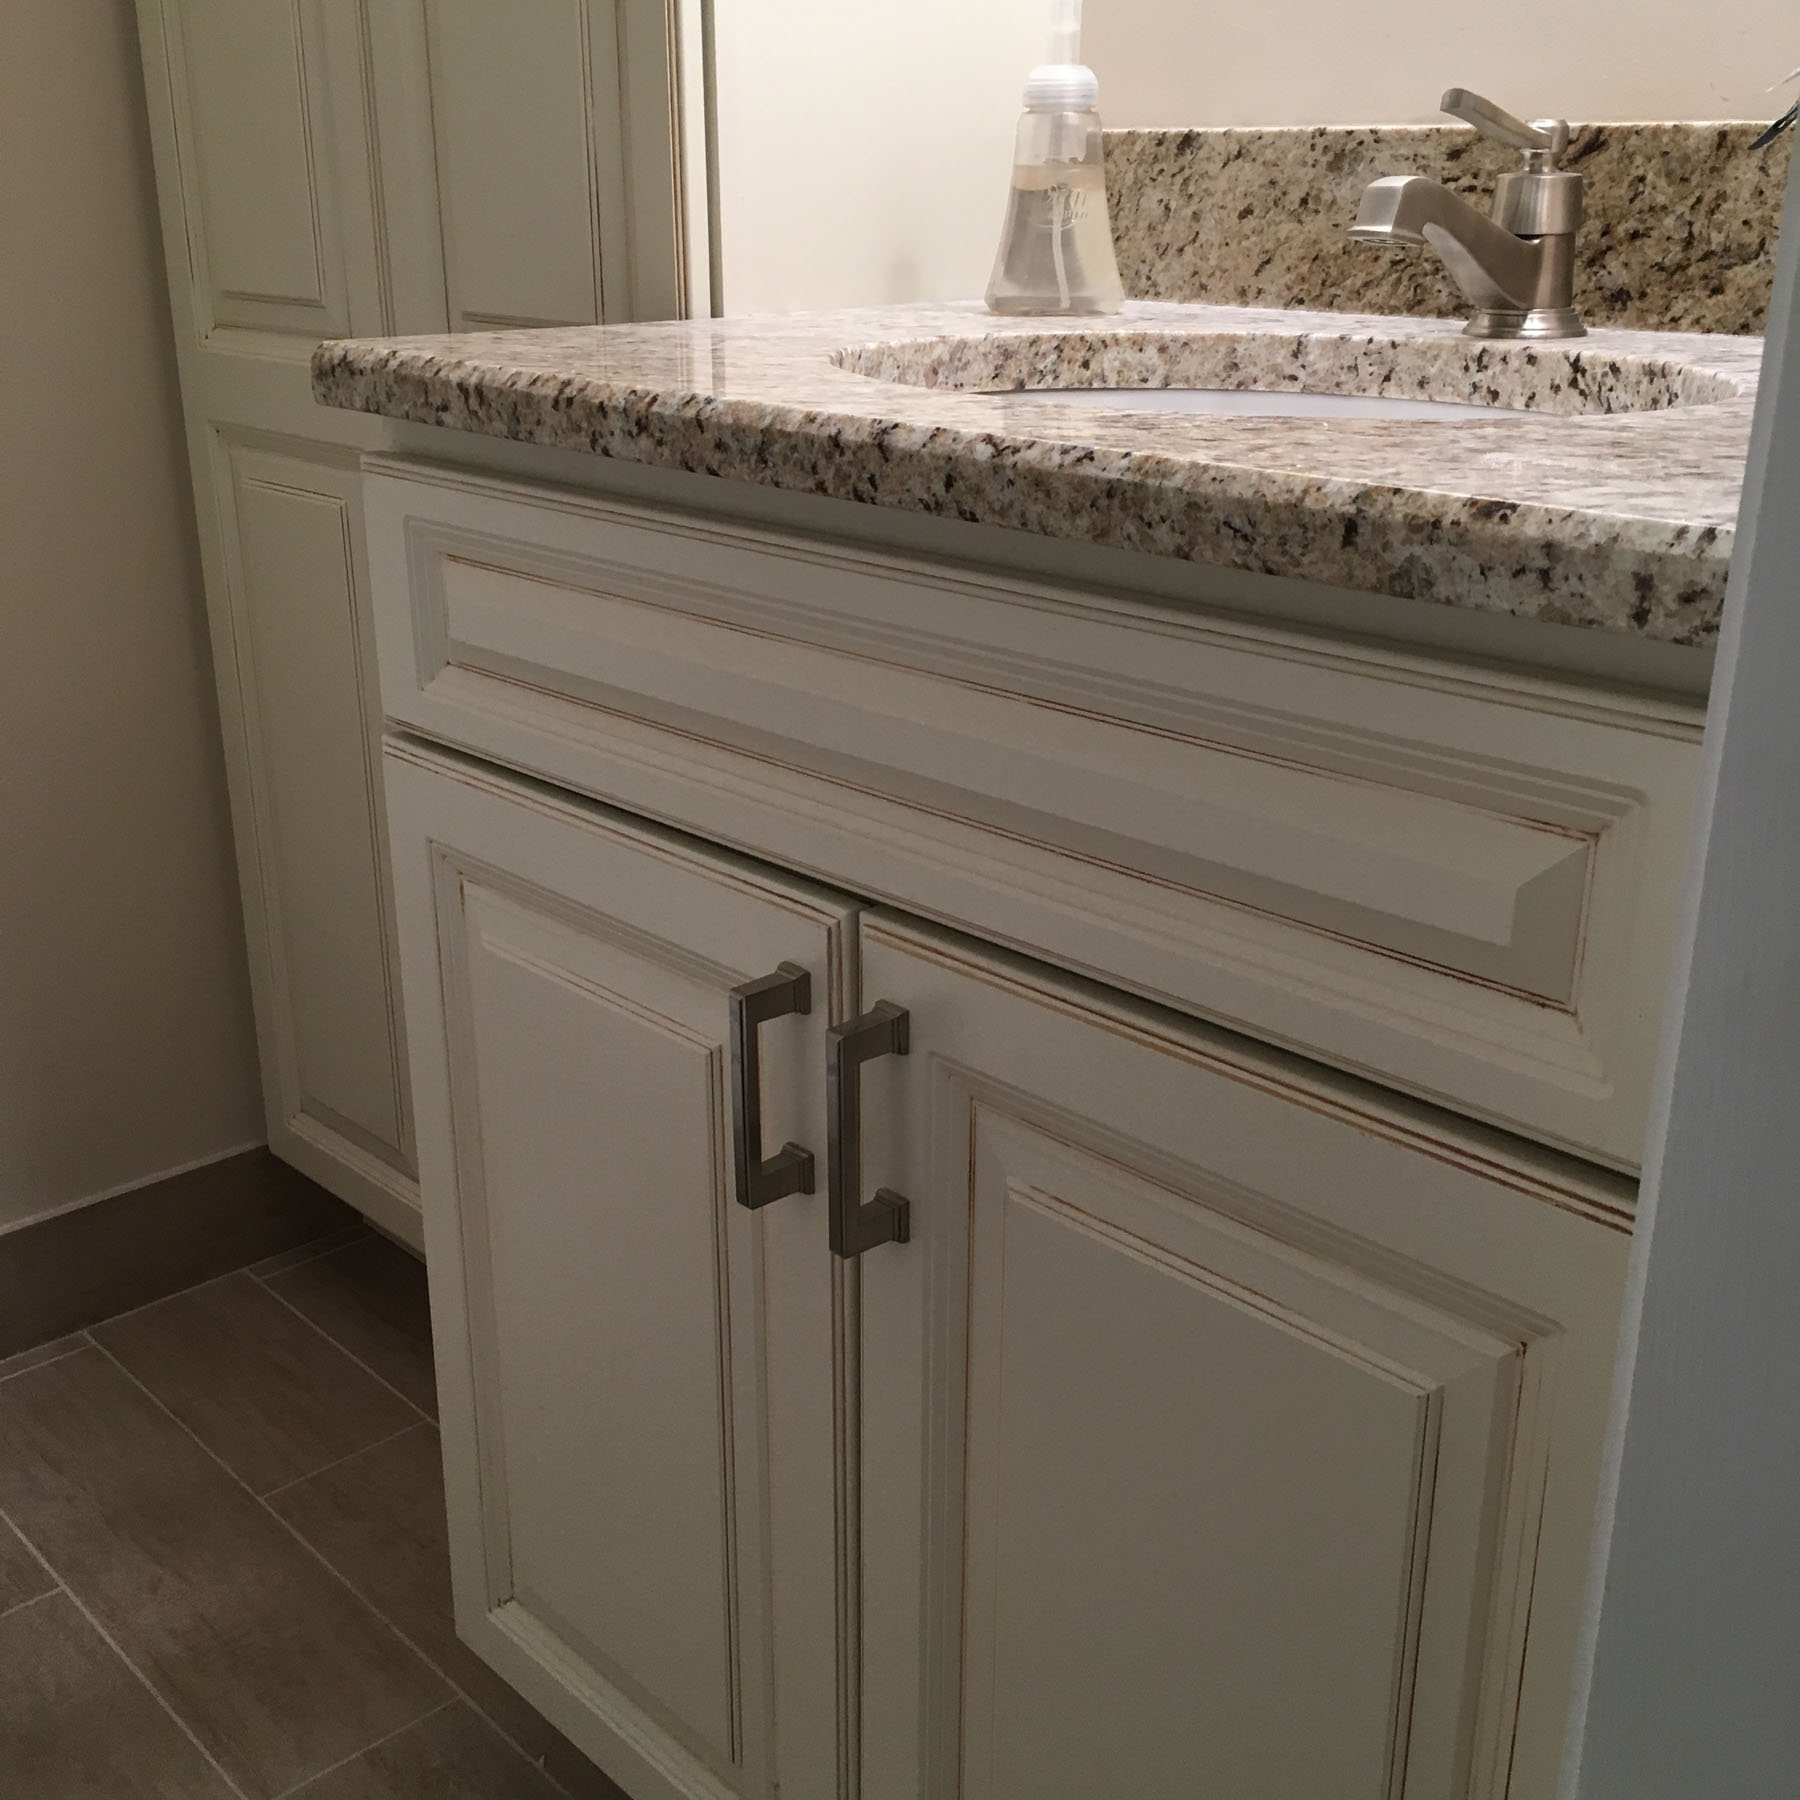 Townhouse Bathroom Remodeling In Elk Grove Village Sunny Construction Remodeling Kitchen